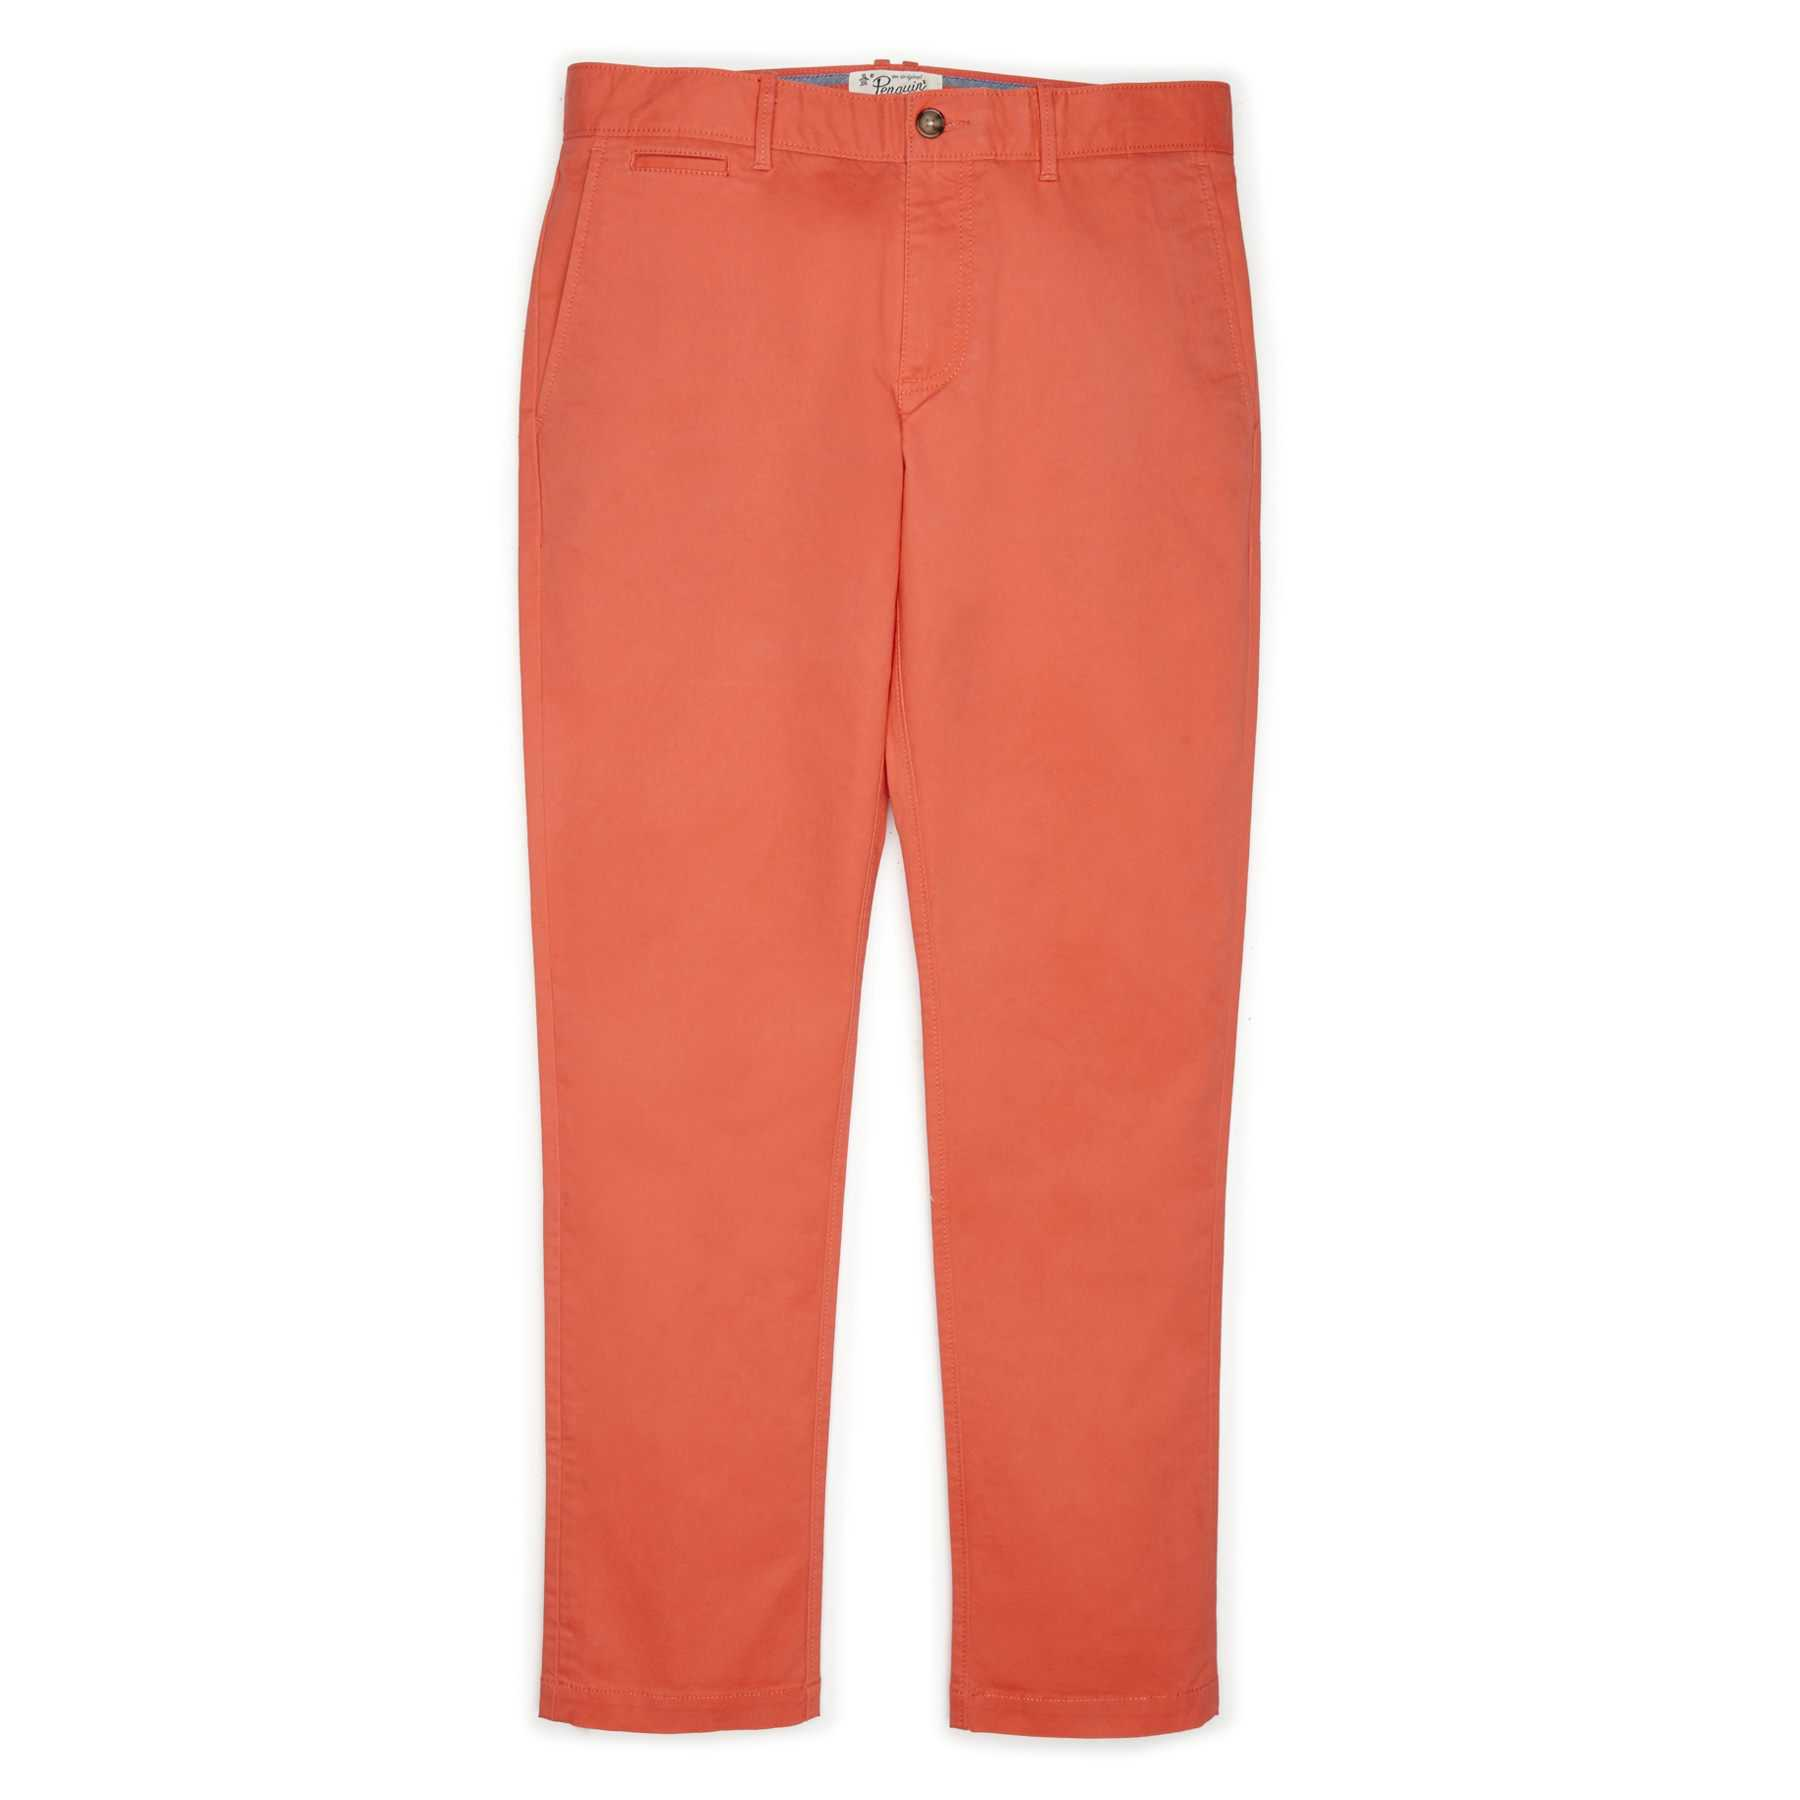 Original Penguin P55 SLIM STRETCH CHINO